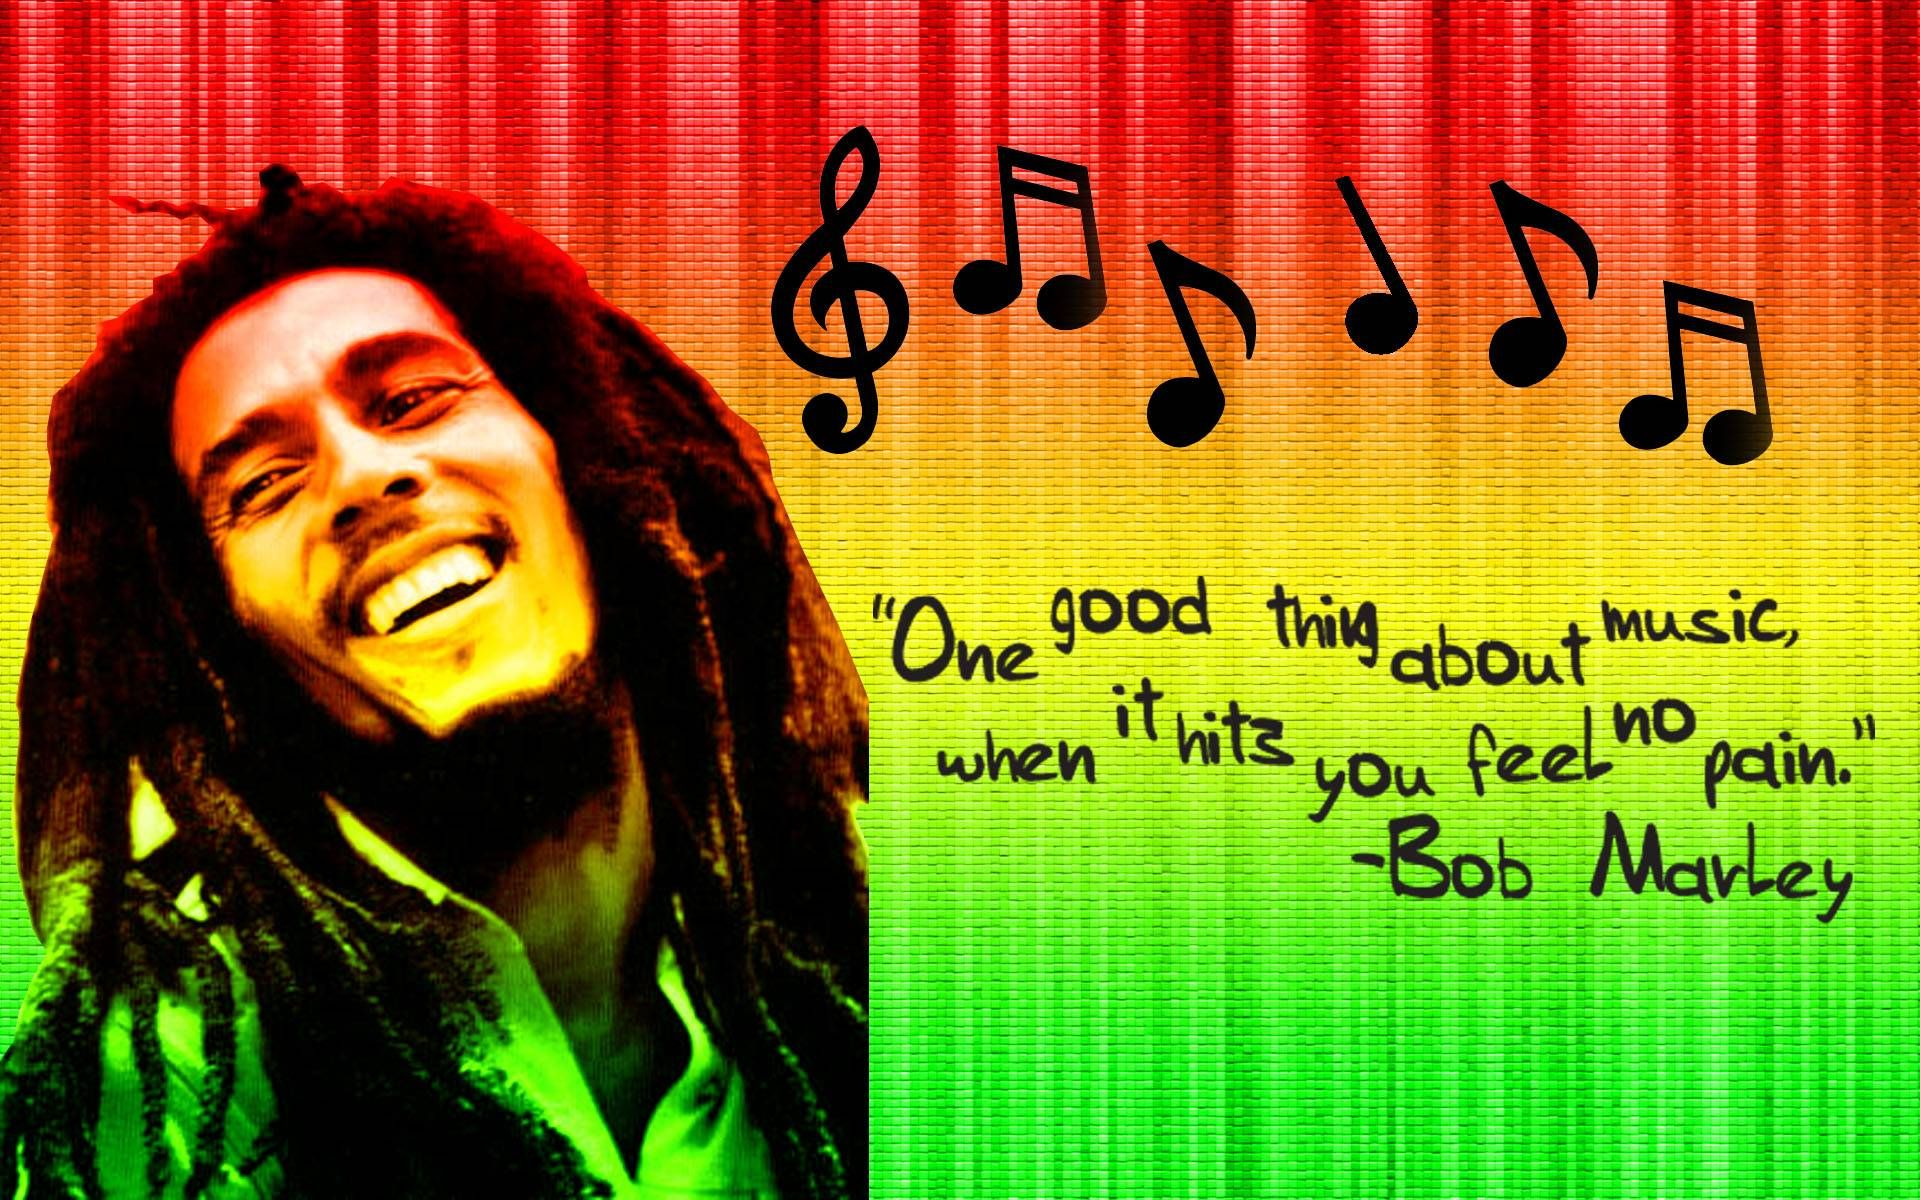 Bob Marley Frases Pictures Hes Awesome Pinterest Bob Marley